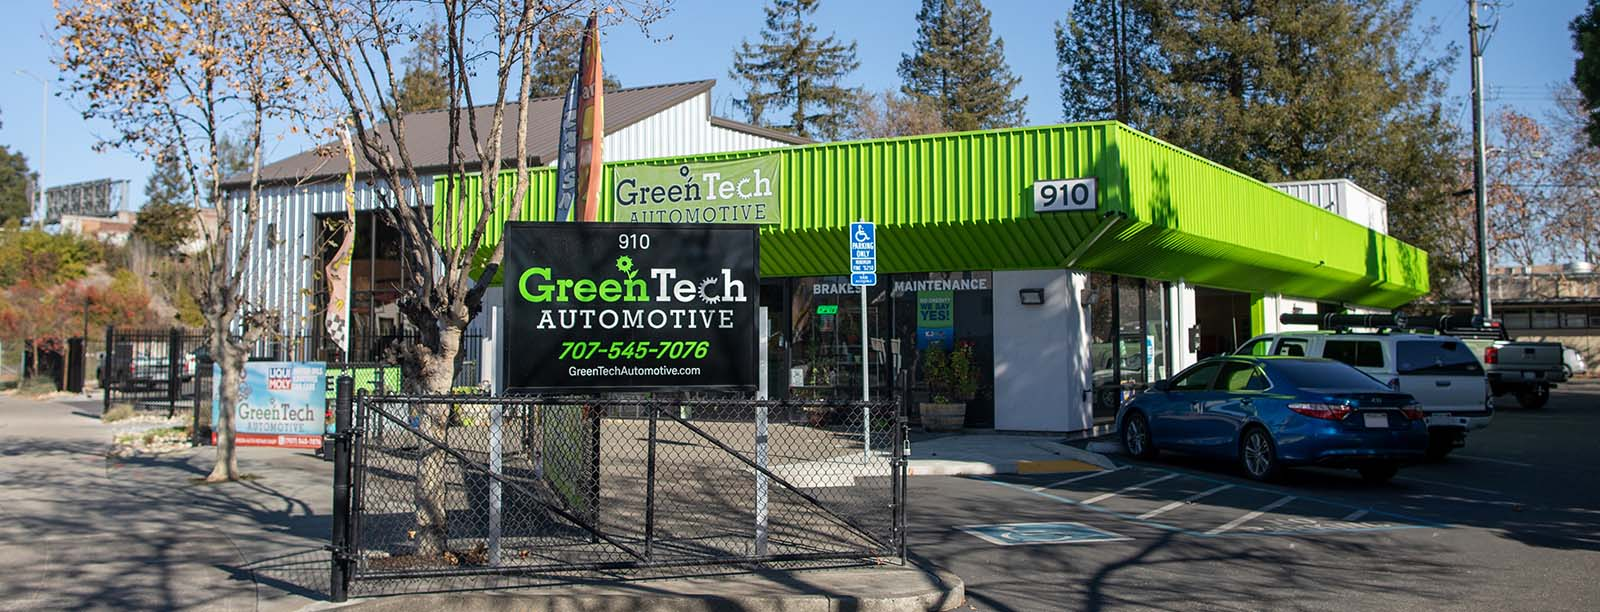 GreenTech Automotive